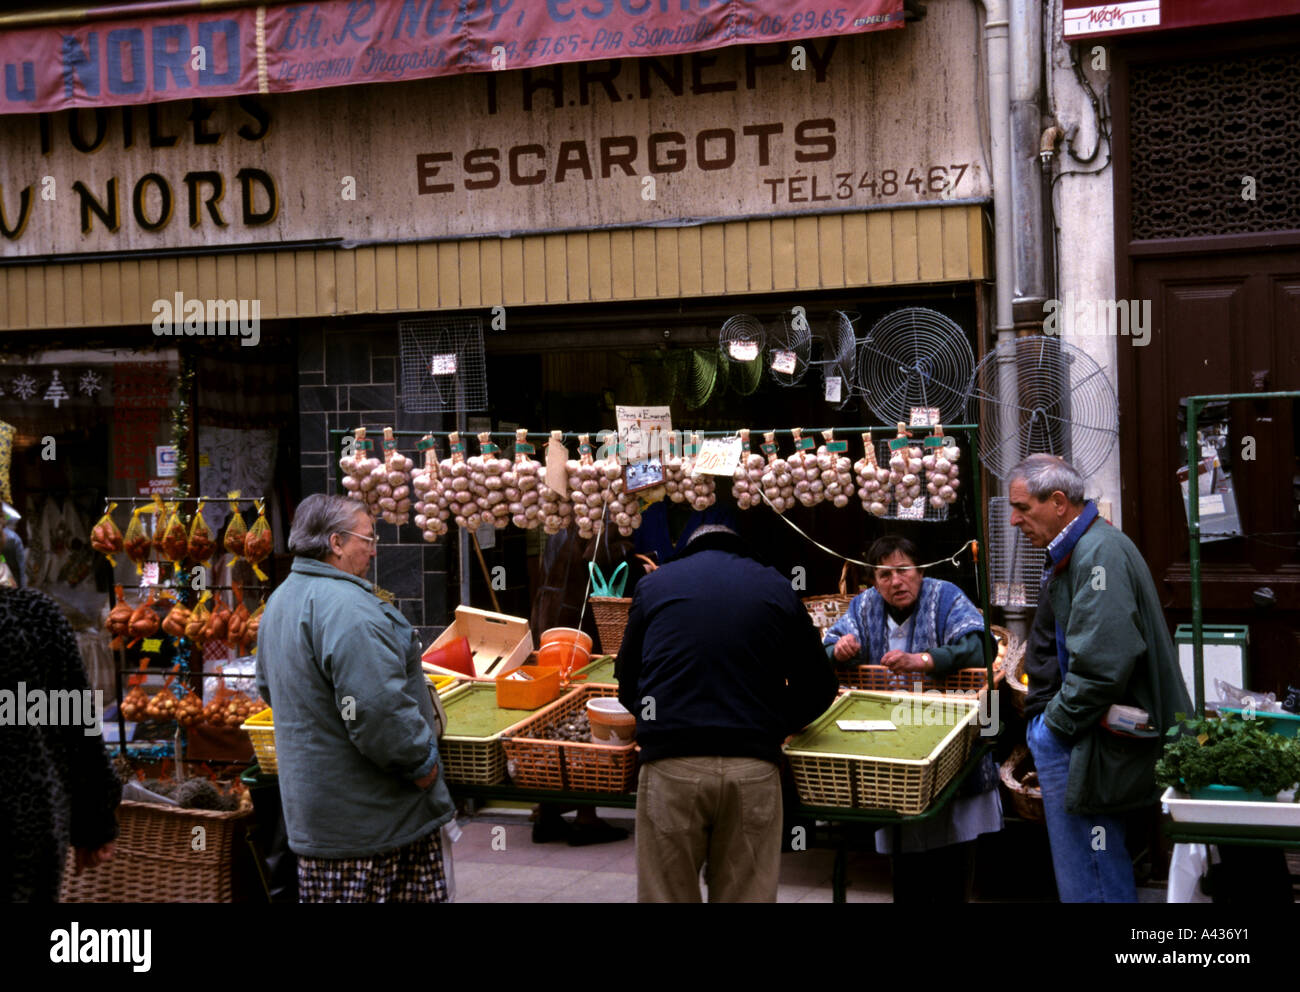 France languedoc roussillon garlic shop food market perpignan stock photo royalty free image - Boutique free perpignan ...